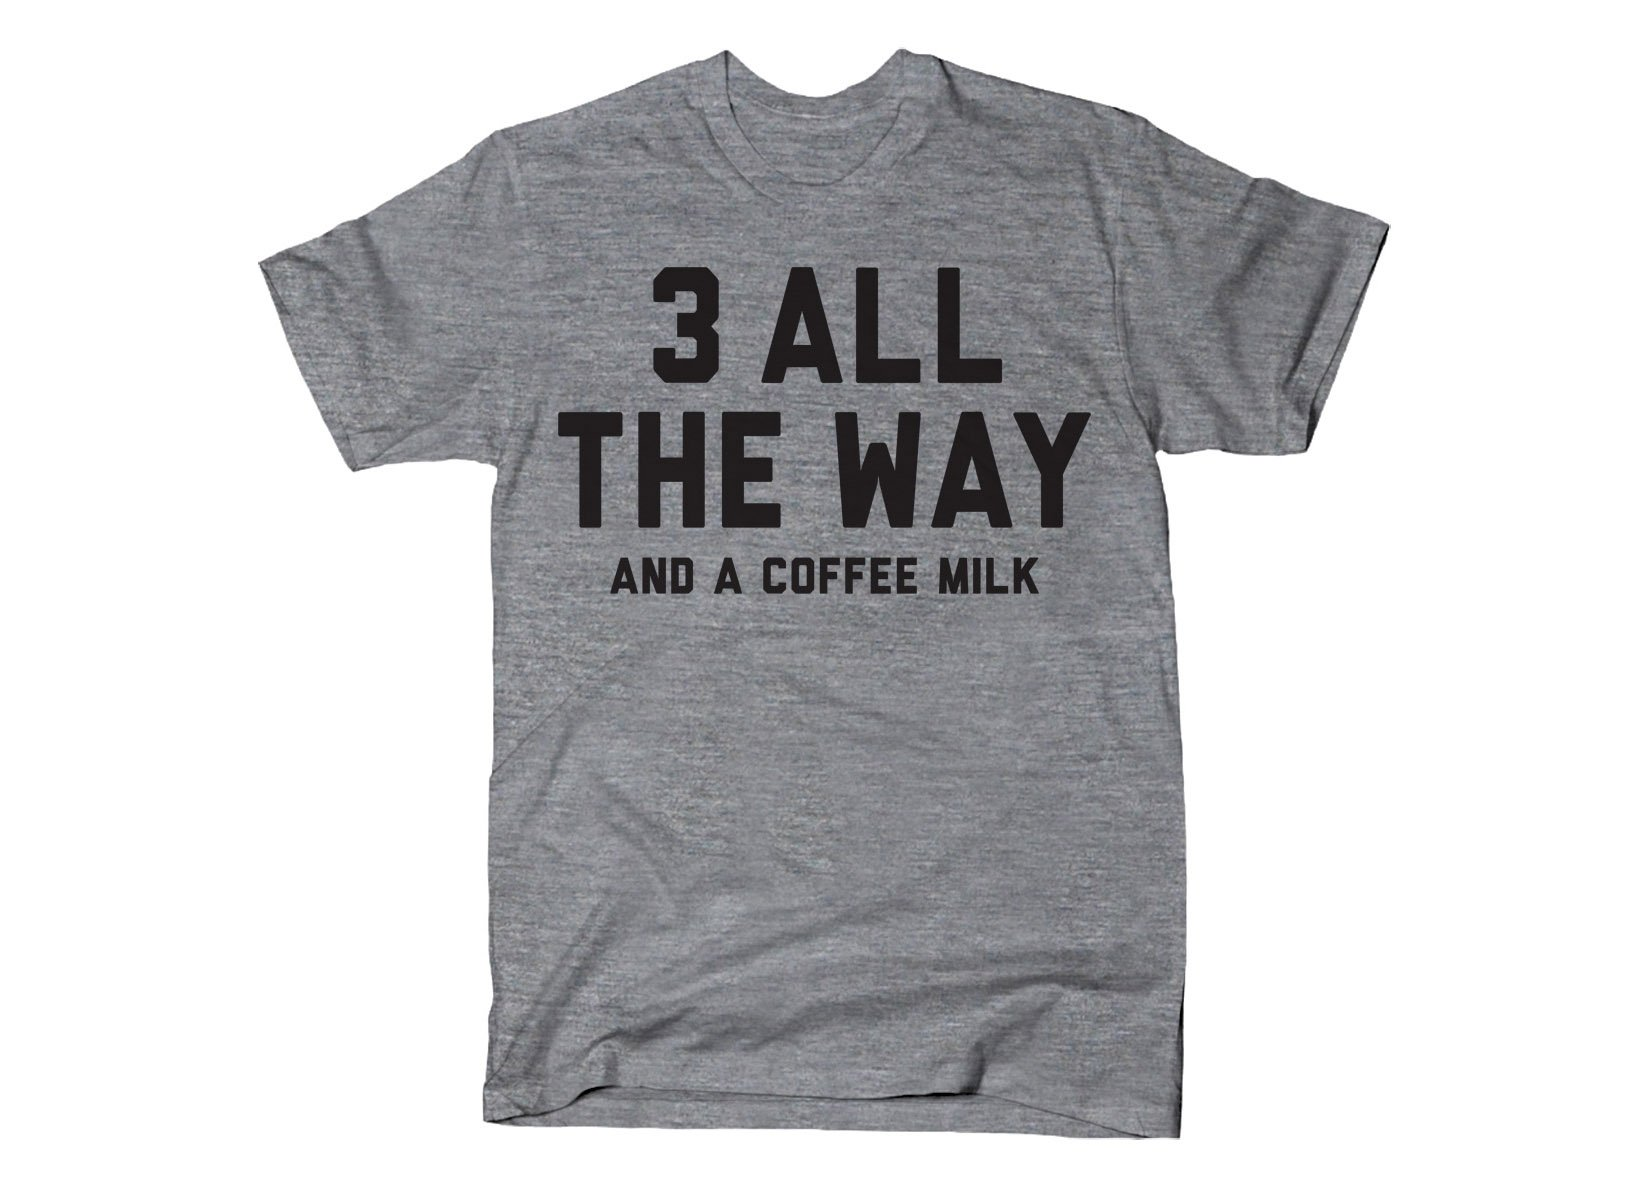 3 All The Way on Mens T-Shirt